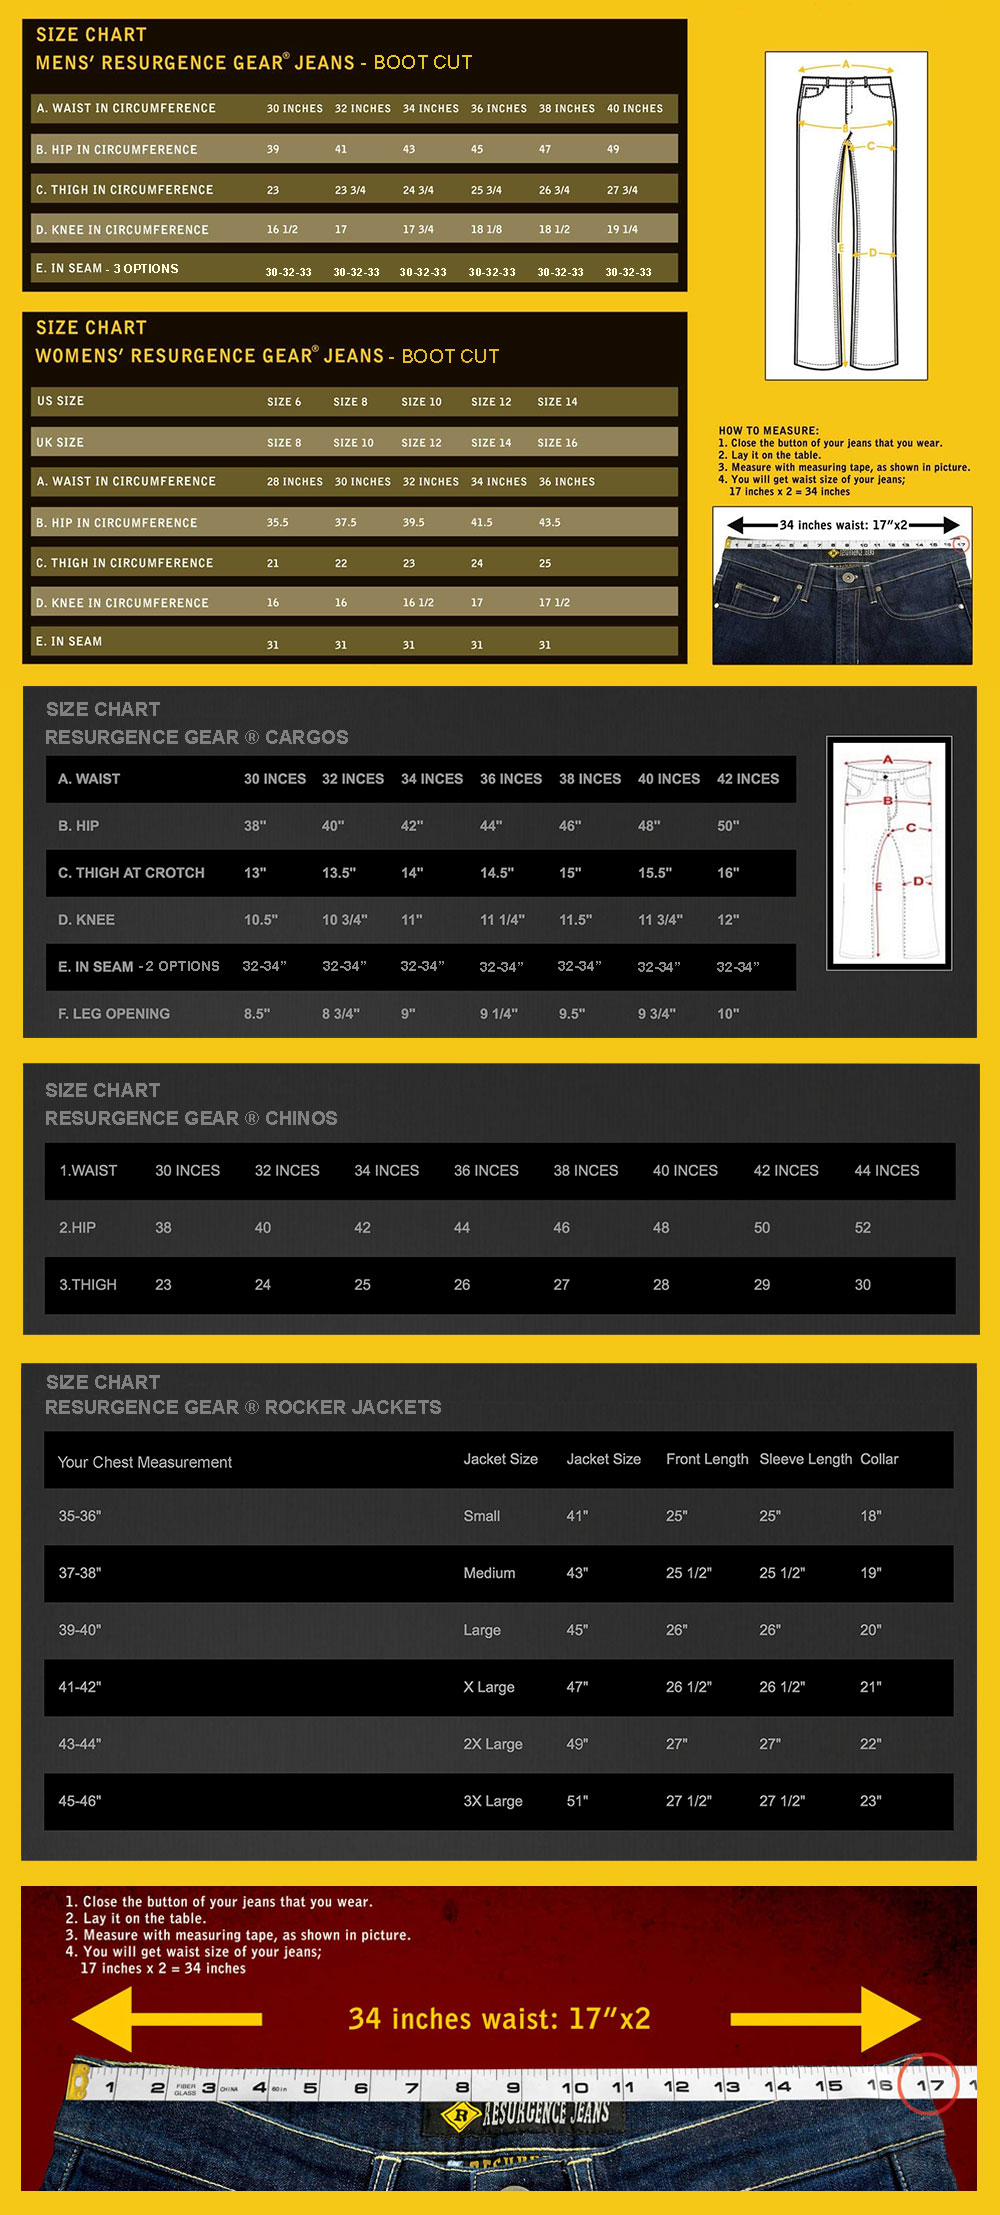 Resurgence Gear Motorcycle Clothing Size Chart - Jeans, Jackets, Hoodies & Pants - Australia